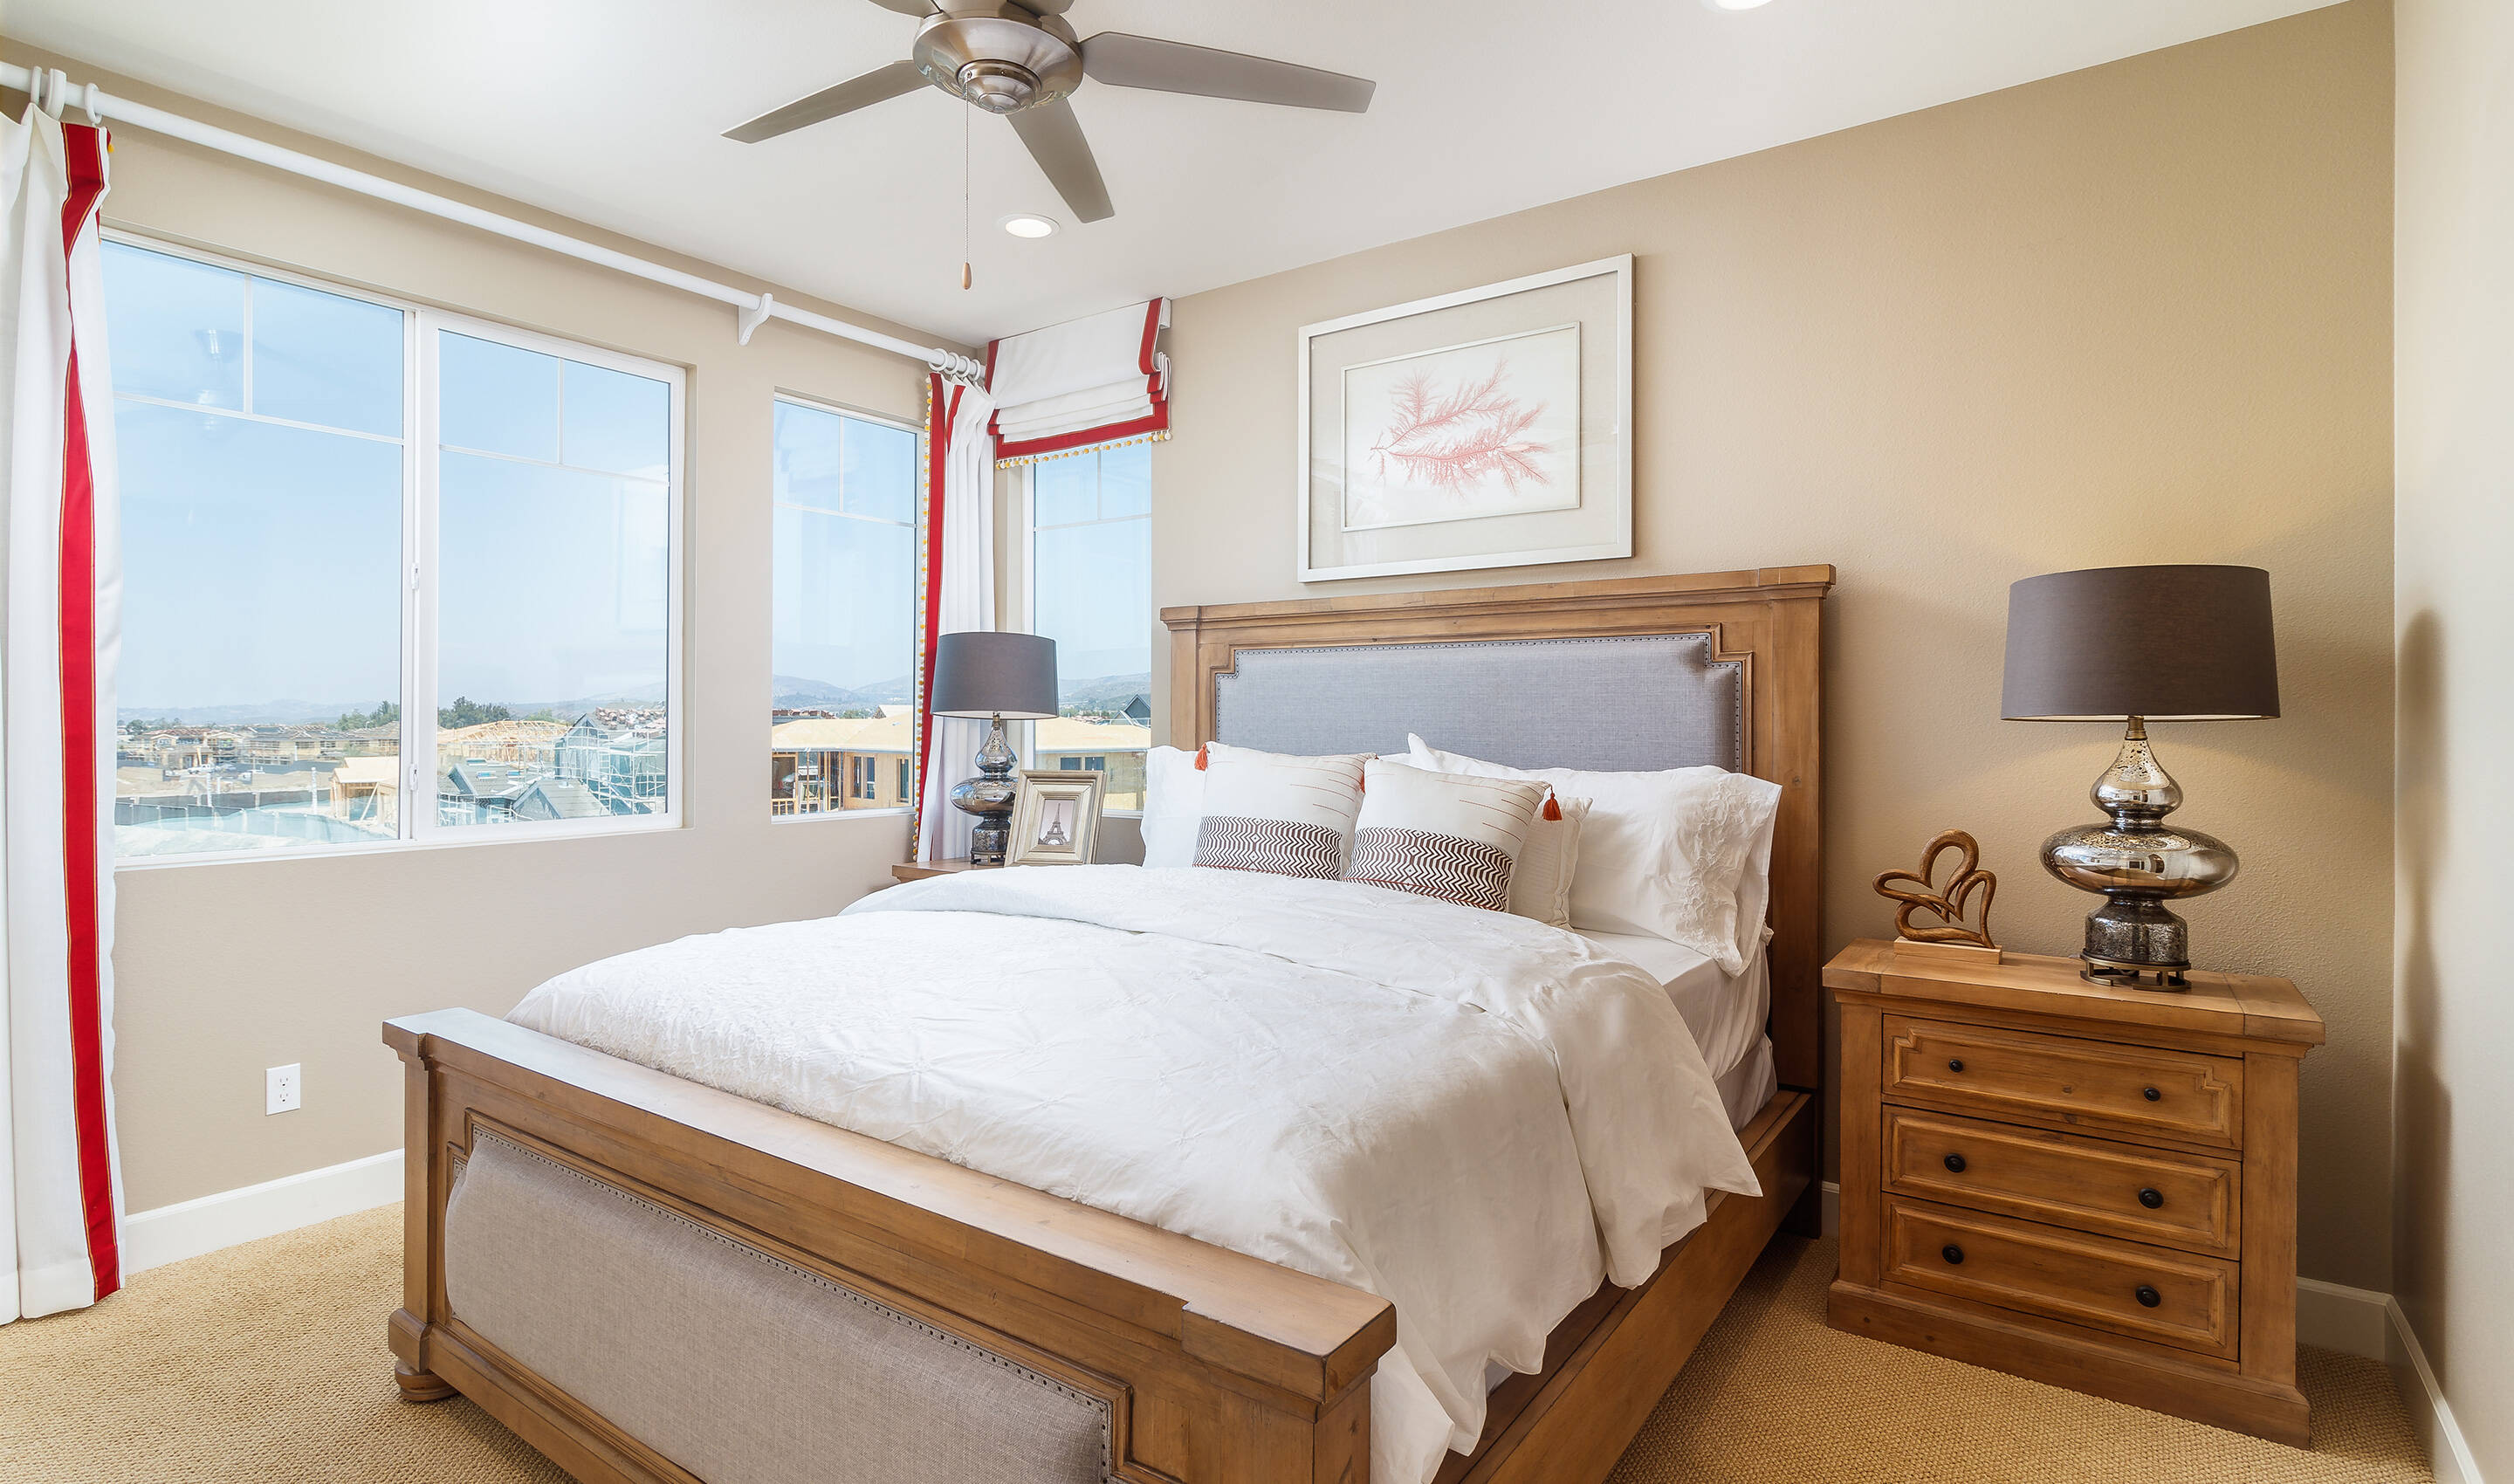 baron-owners-suite-deco-at-cadence-park-new-homes-irvine-ca